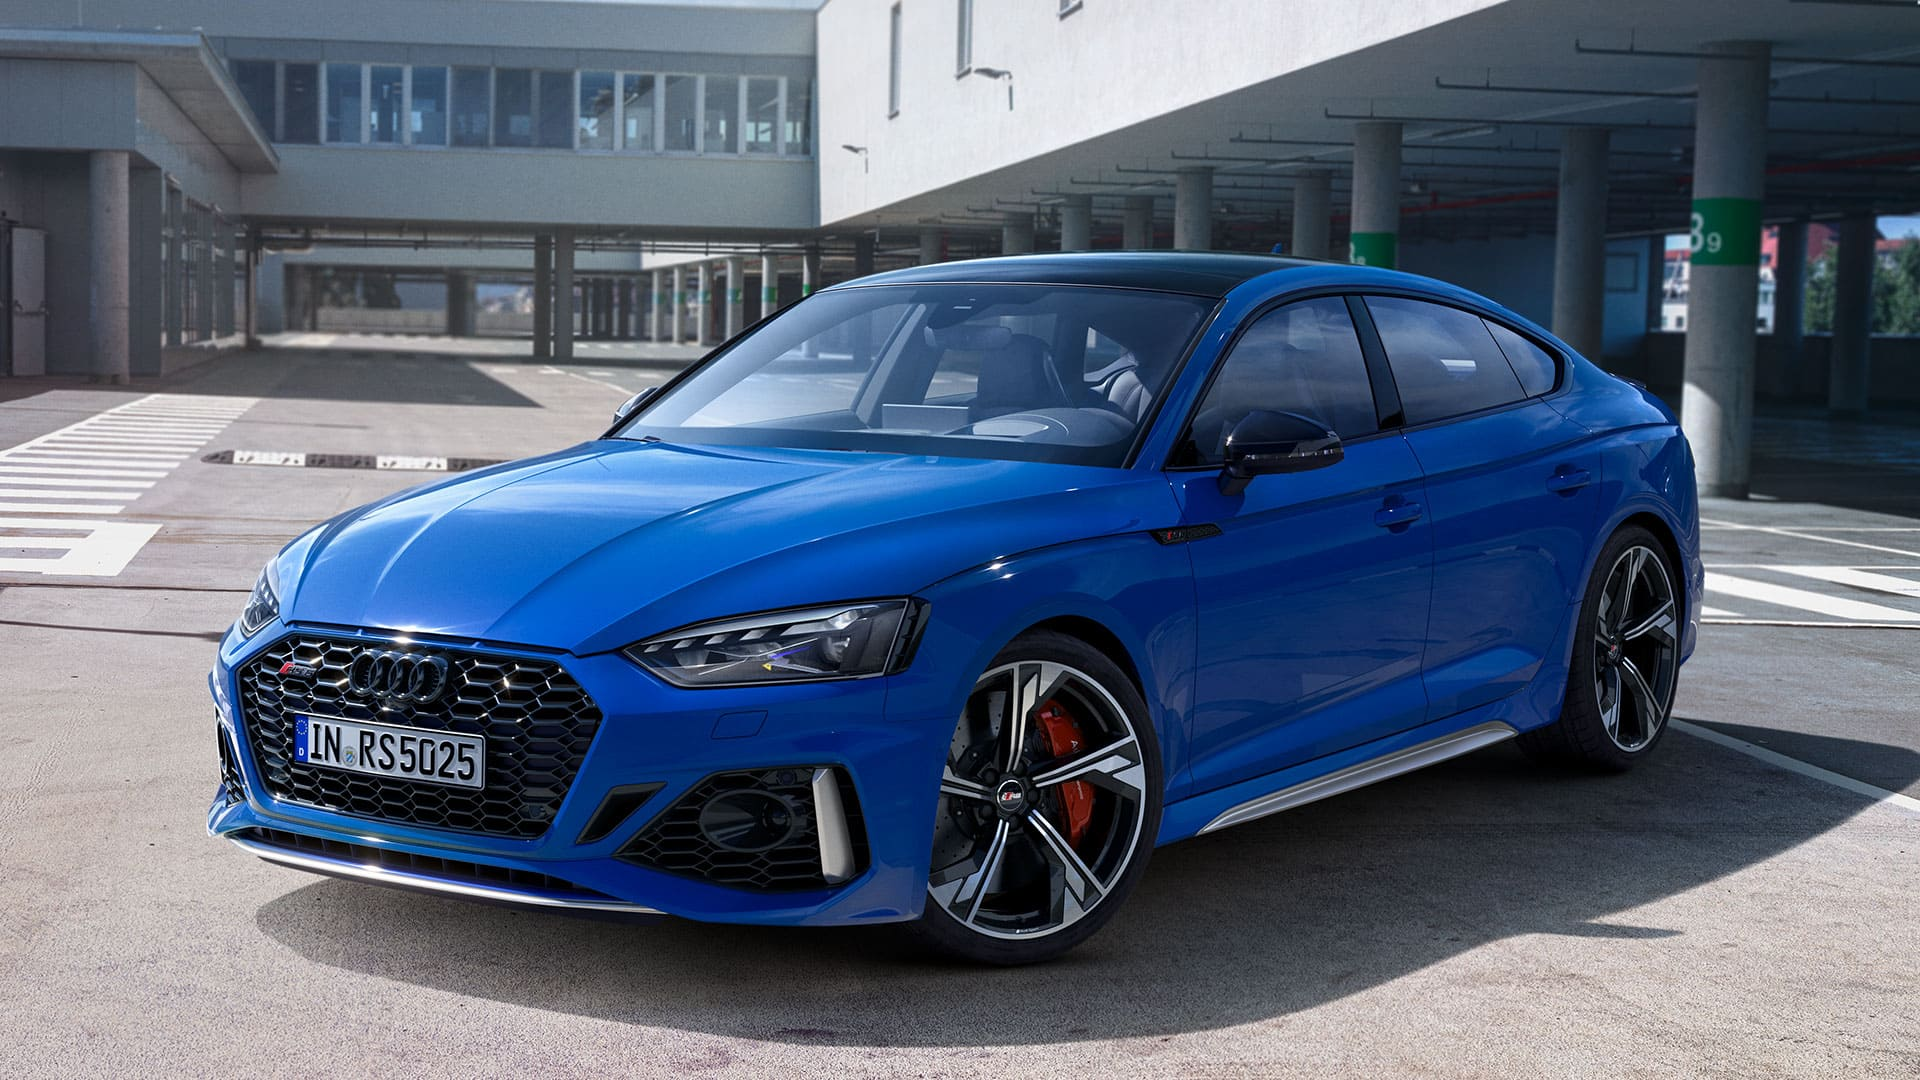 Frontseitenansicht Audi RS 5 Sportback 25 years